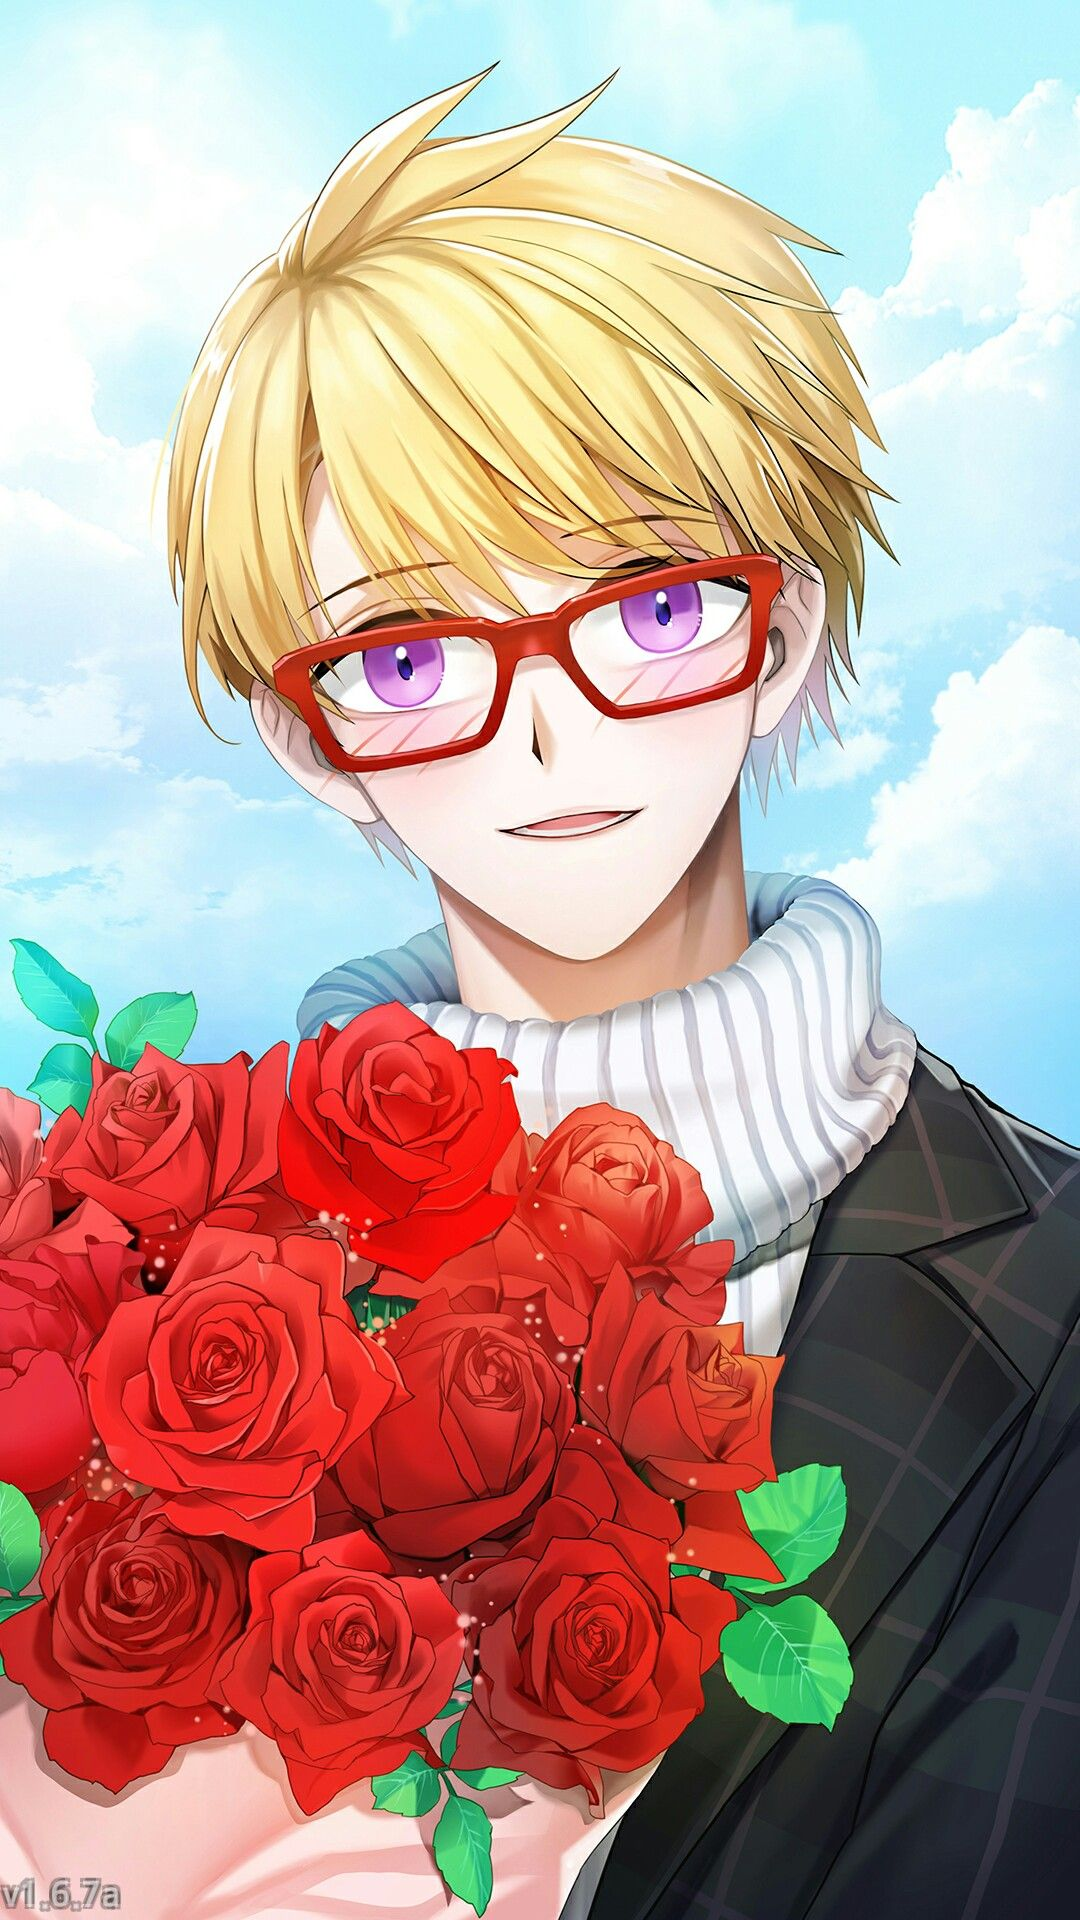 Yoosung Valentine S Day Mystic Messenger Mystic Messenger Mystic